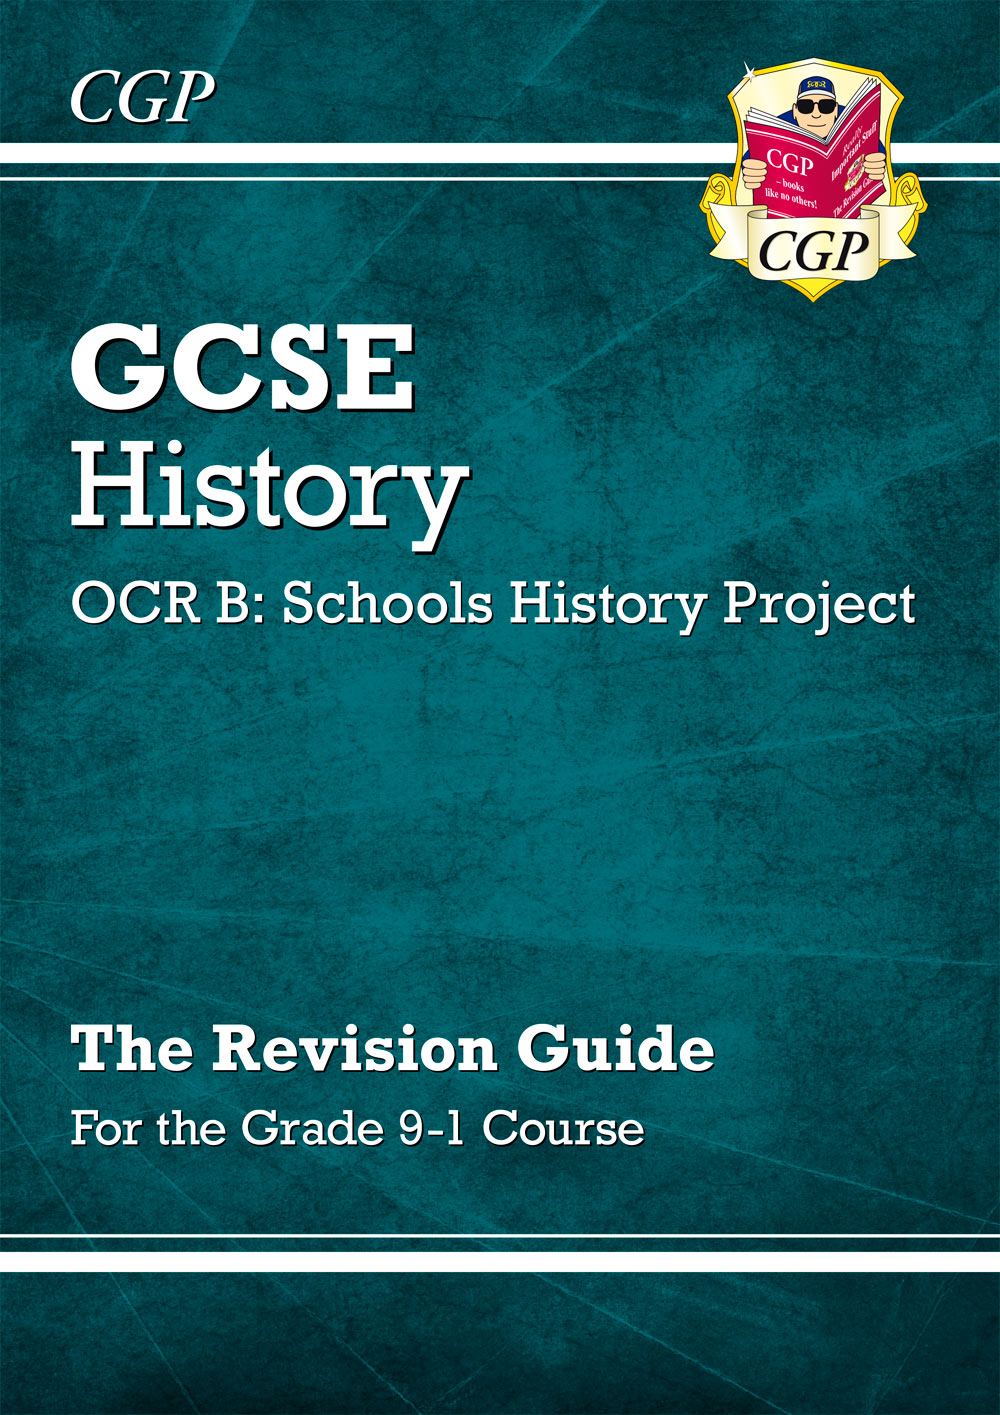 HPRR41 - GCSE History OCR B: Schools History Project Revision Guide - for the Grade 9-1 Course